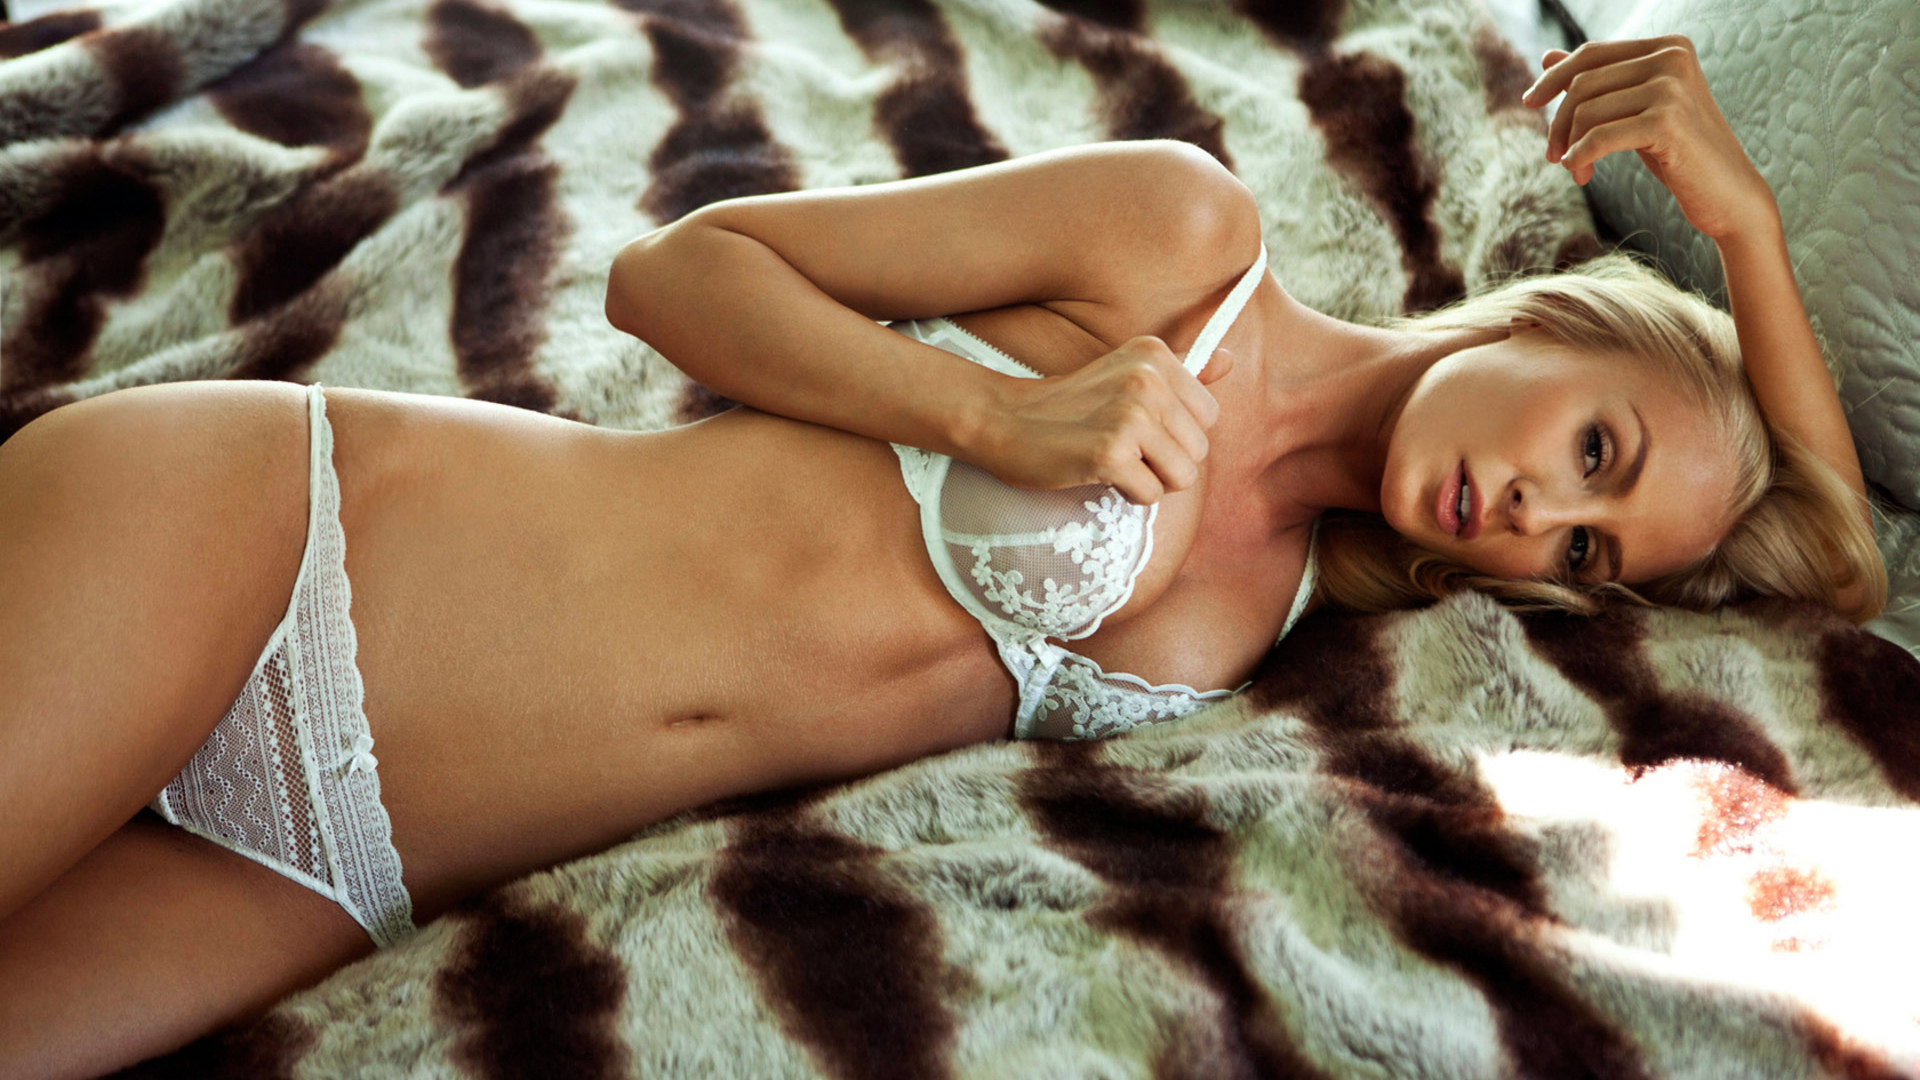 Price is right model nude passionate hot wet bodies xxx